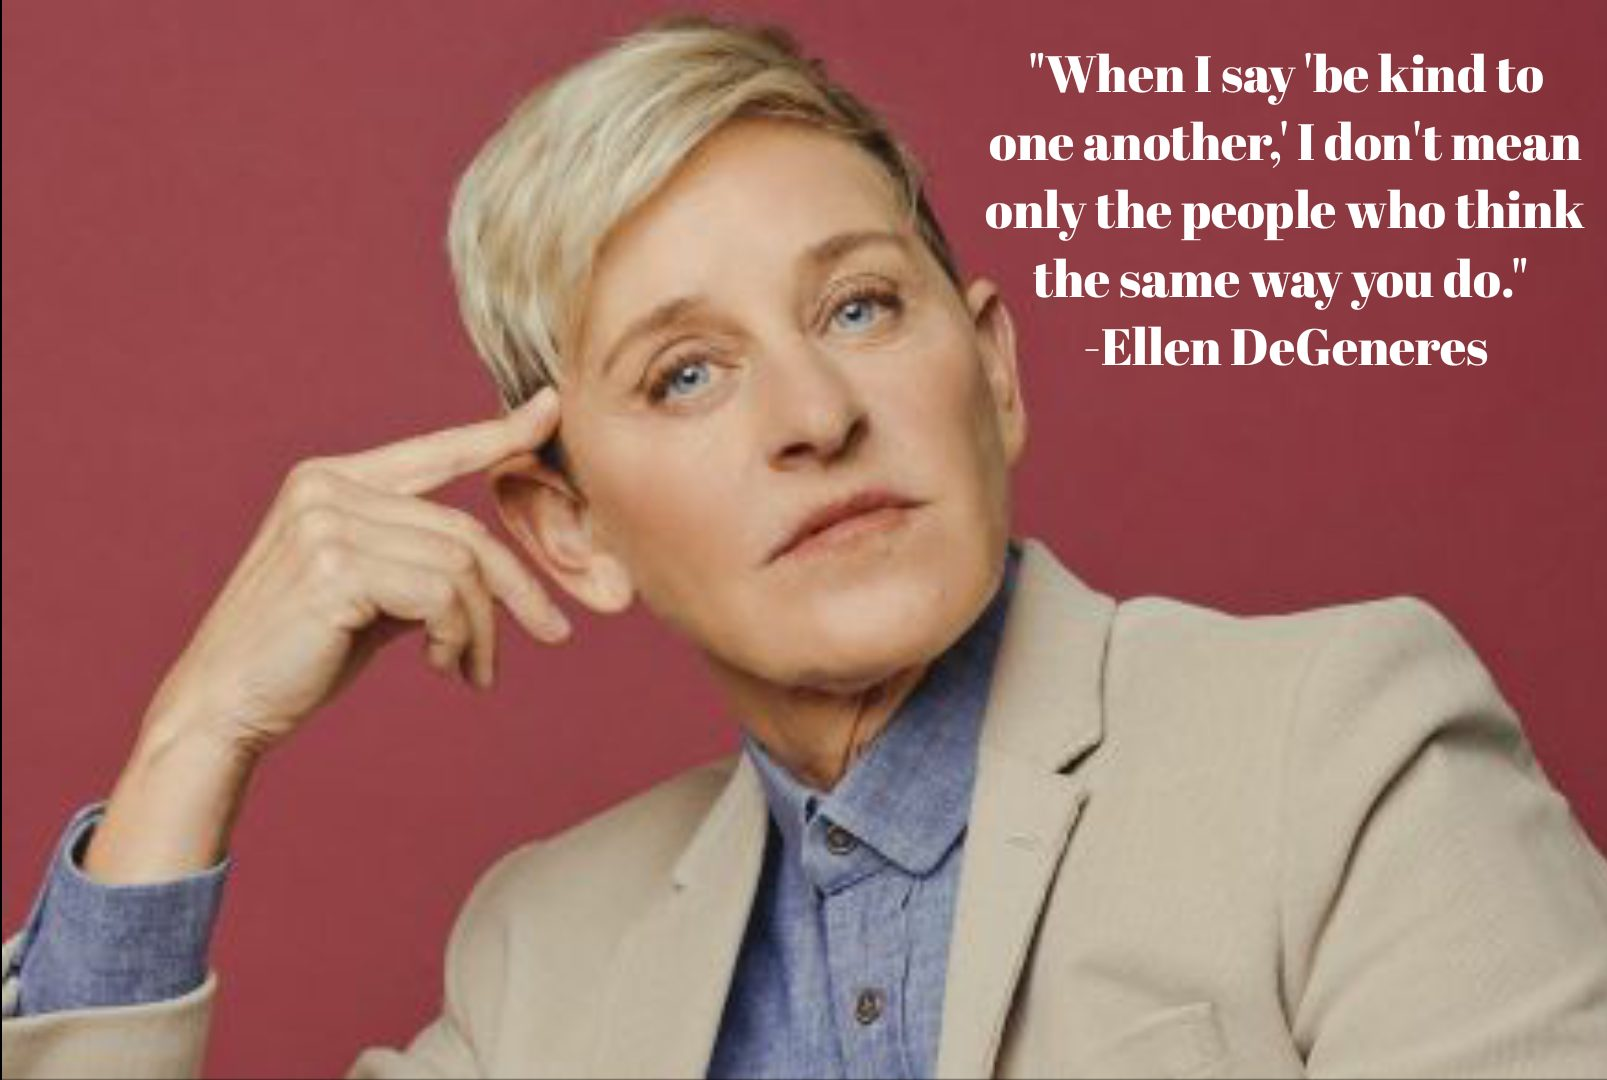 """When I say 'be kind… -Ellen DeGeneres(1607 x 1080)"